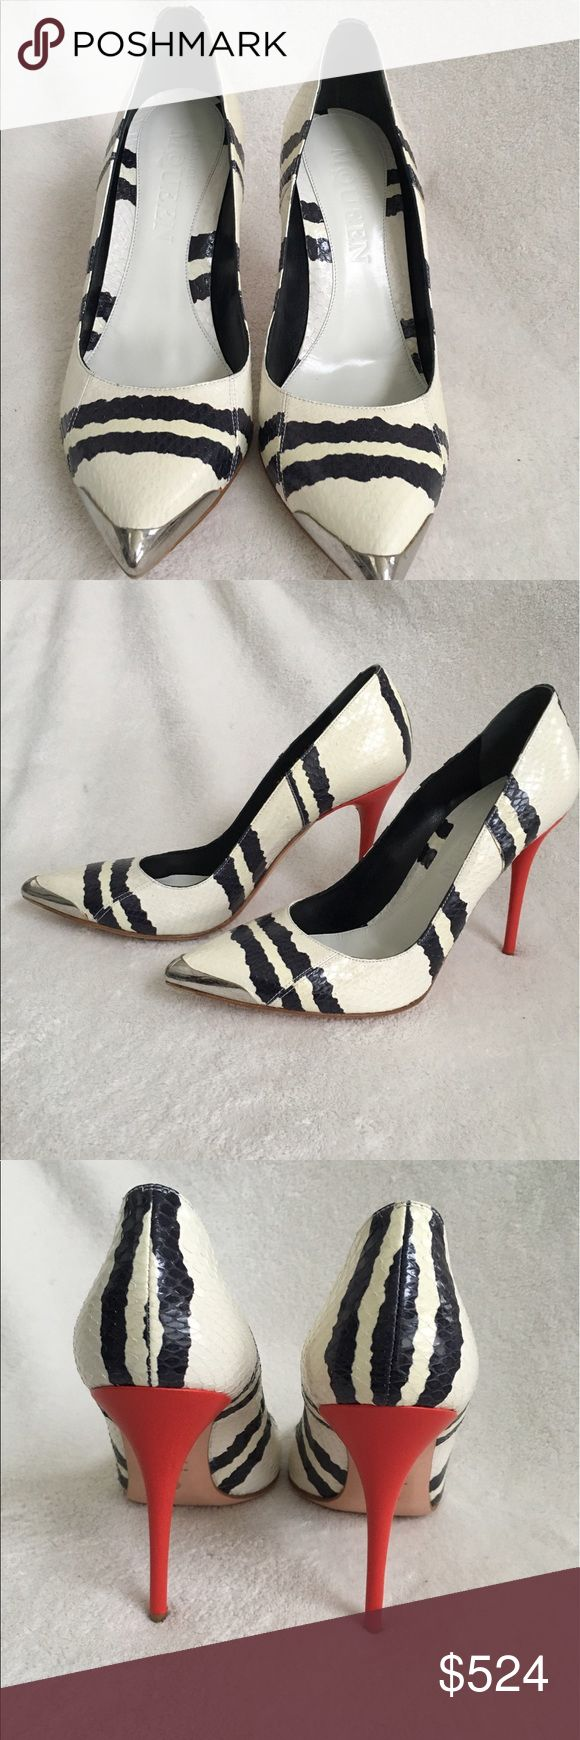 Alexander McQueen black and ivory snake pumps Stunning Alexander McQueen black and ivory snake pumps with red heels. It was originally $1070 and went on sale for $749 and is now selling for another 30% off!!! Only tried on in store and never worn otherwise. It is in great condition. Comes with its original box.     **No trade** Alexander McQueen Shoes Heels